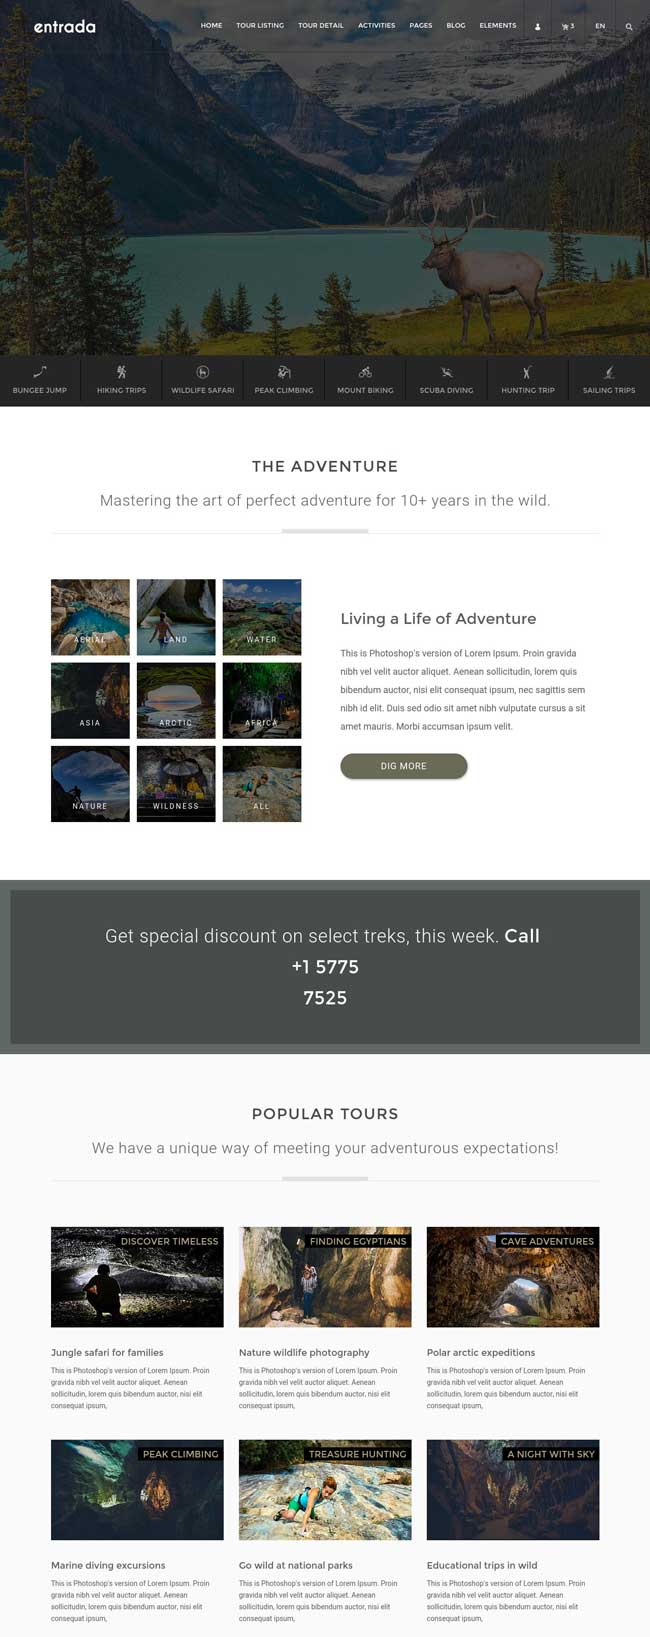 entrada-tours-travel-html-template-for-tour-agency